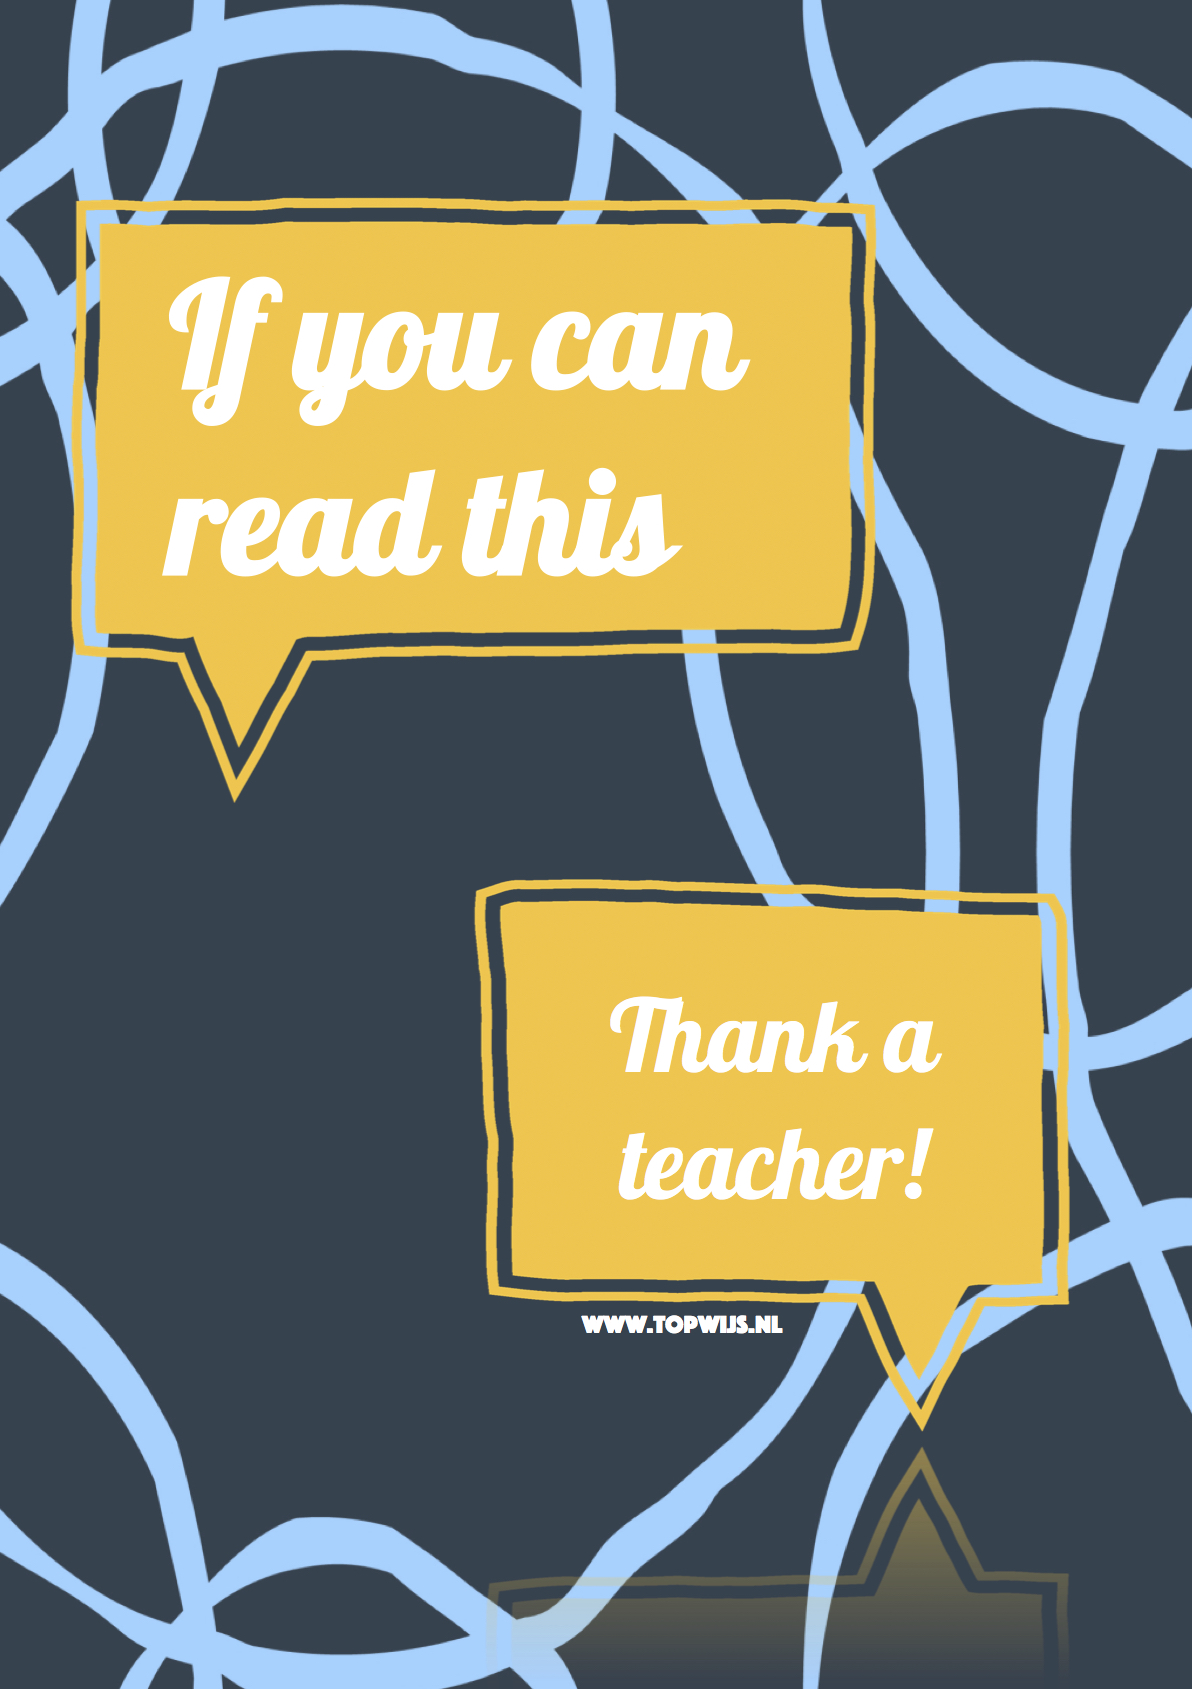 If you can read this, thank a teacher.